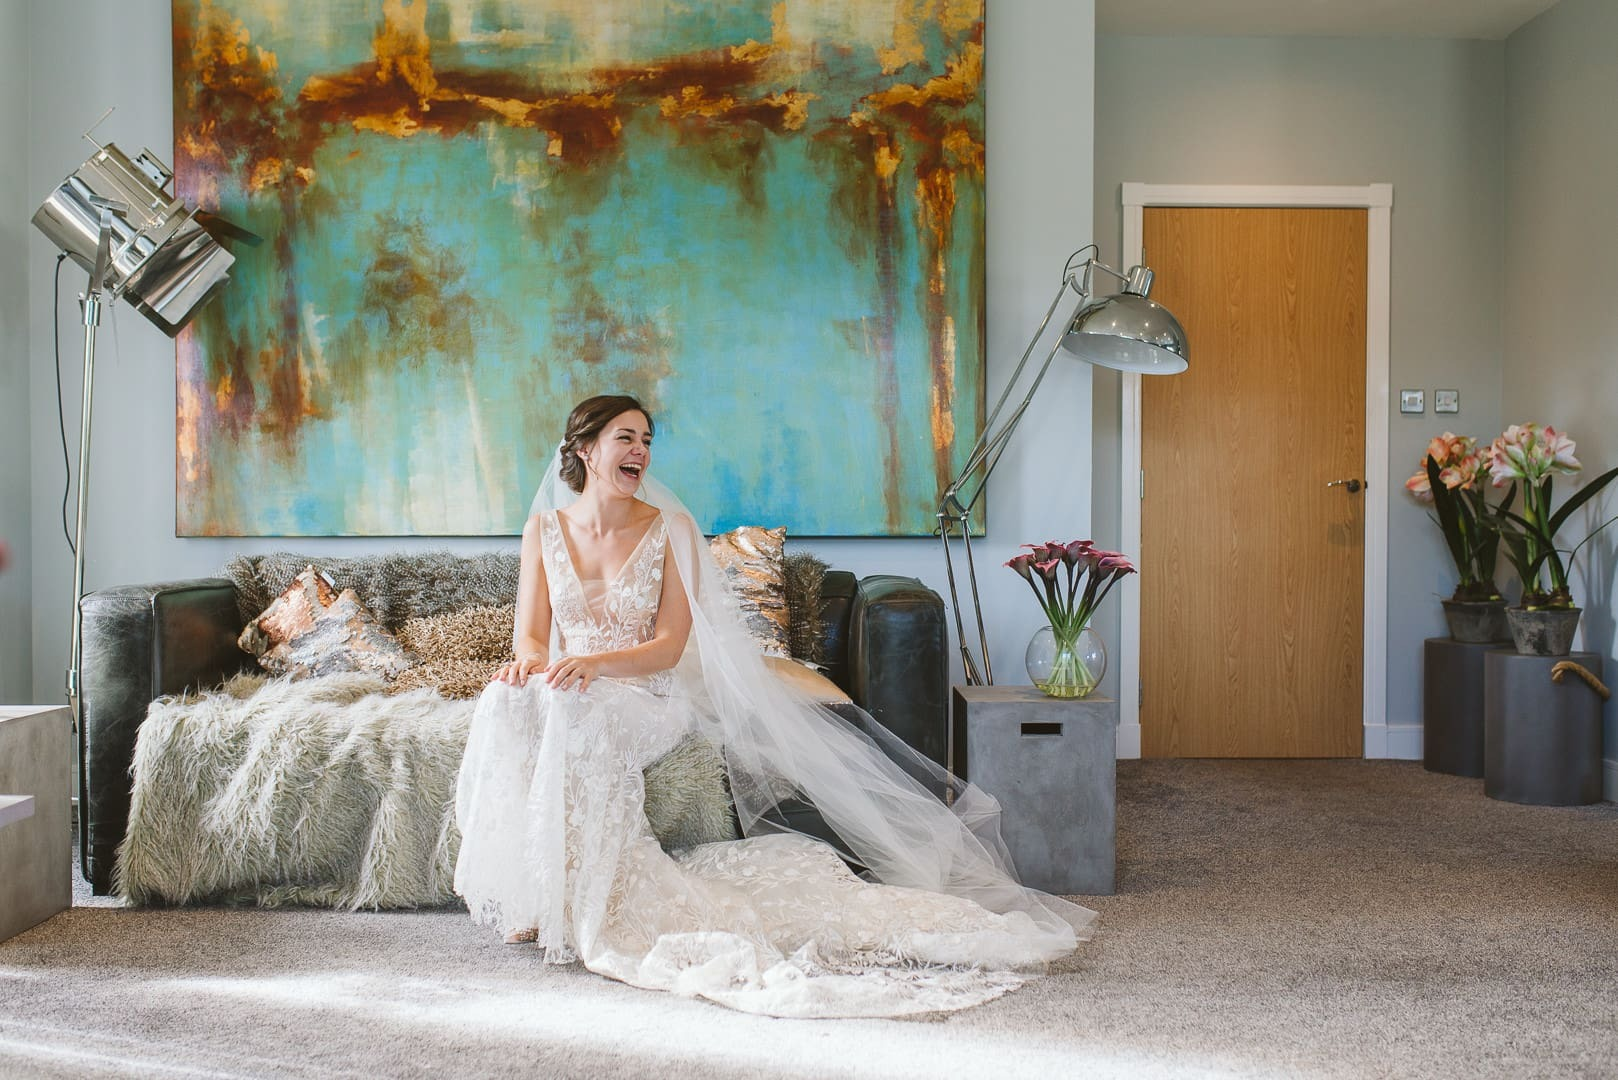 Bridal Portrait - From my best wedding photos from 2019